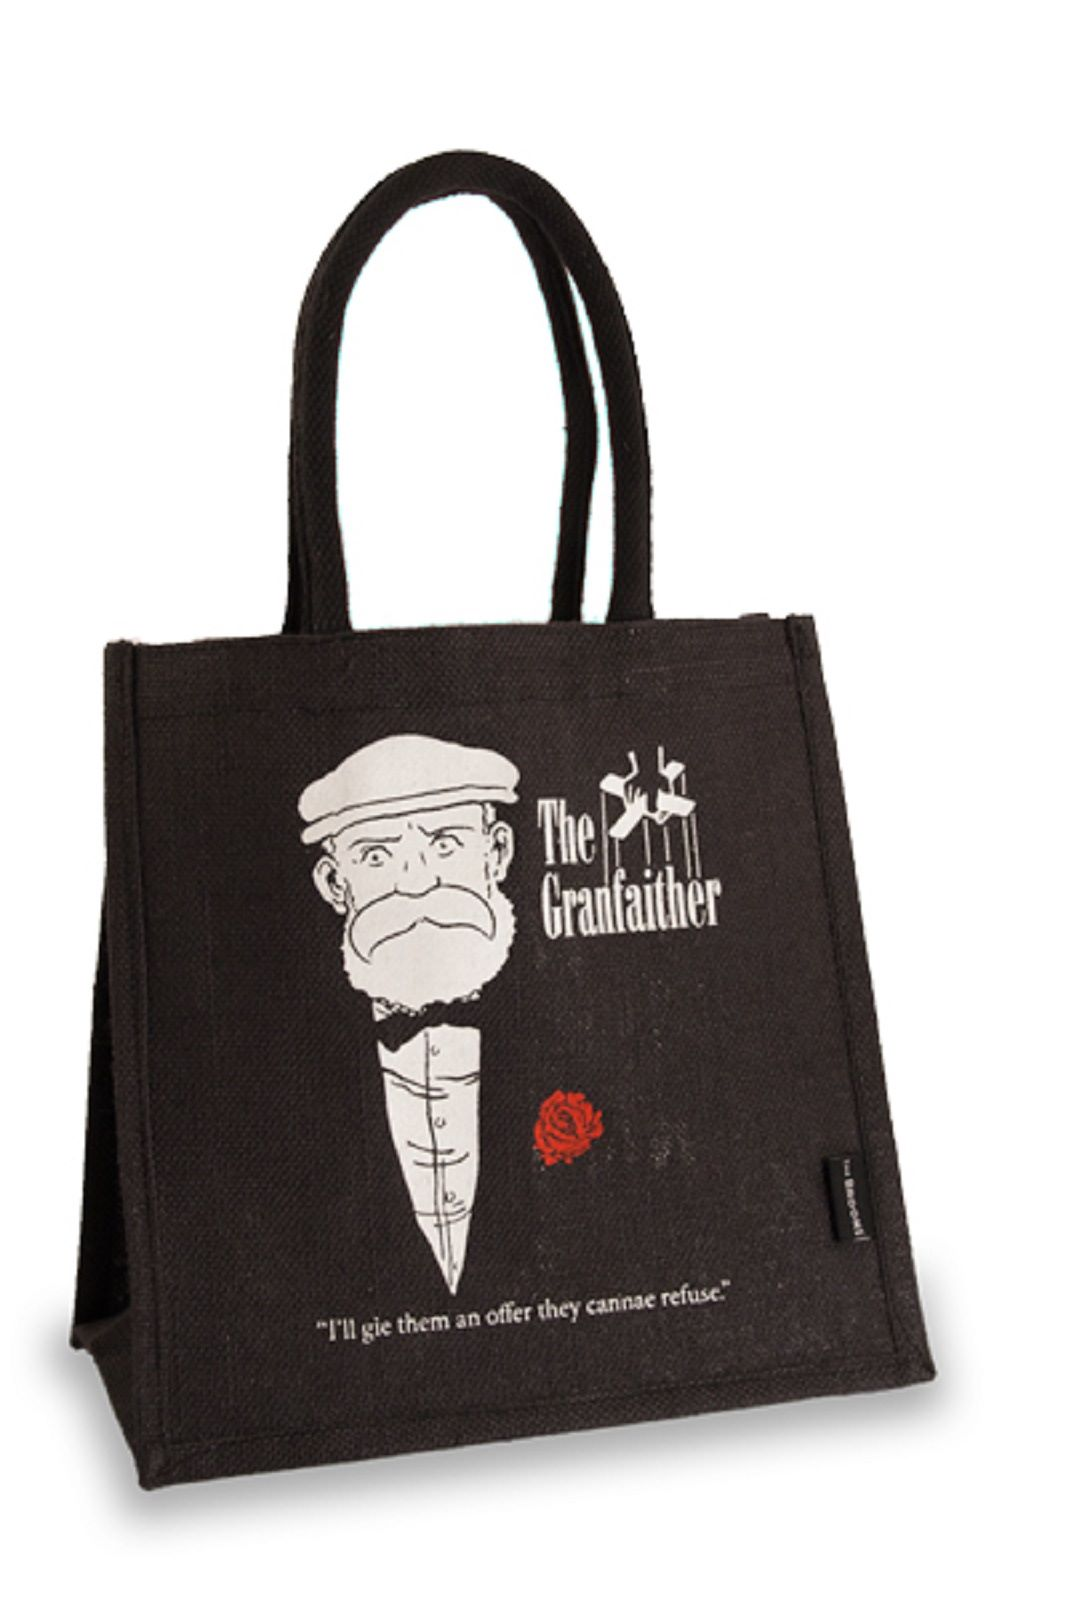 Grandfaither Medium Shopping Bag - Great Gift Idea - Grandfather